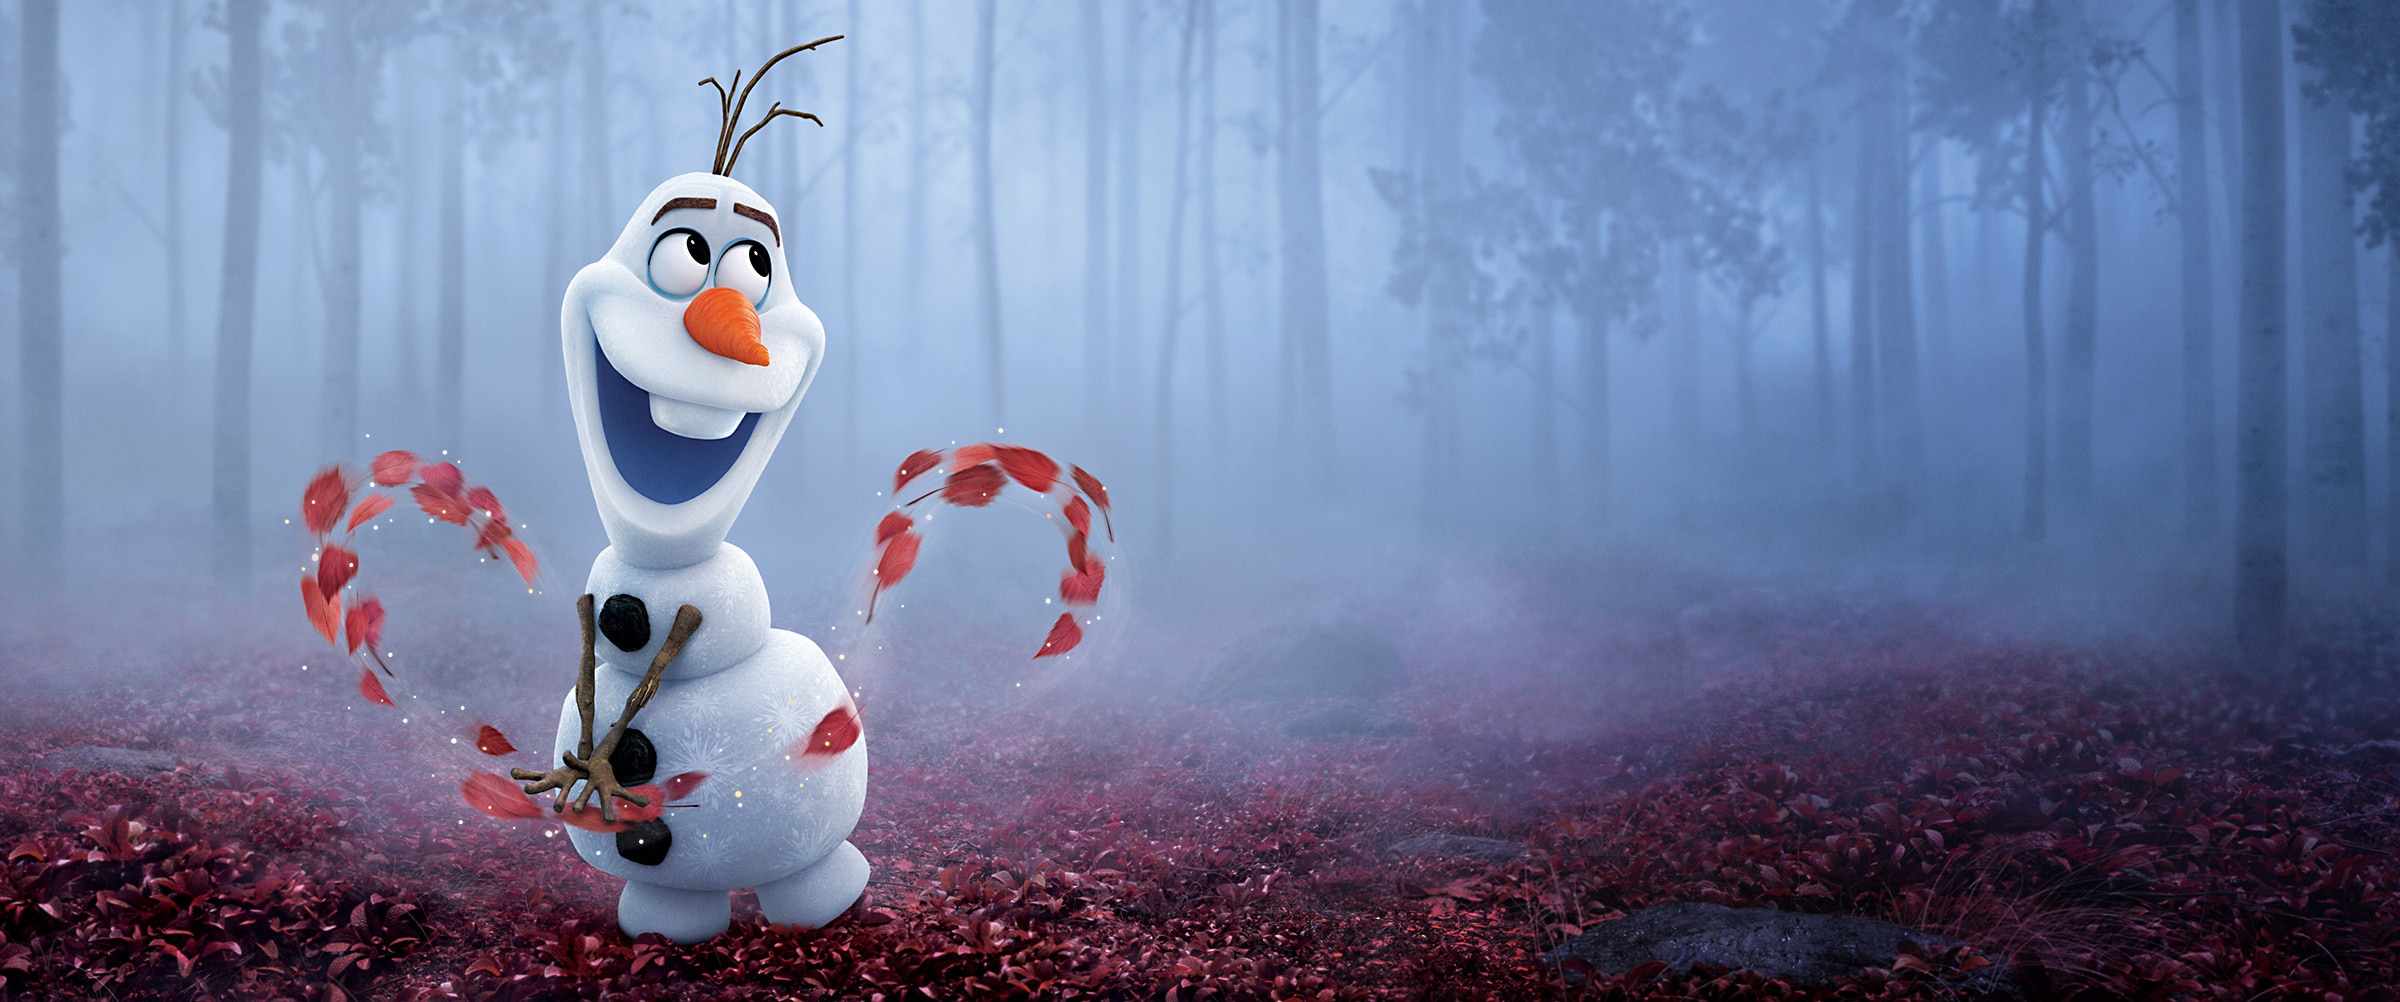 Frozen 2 - Showcase hero - Olaf